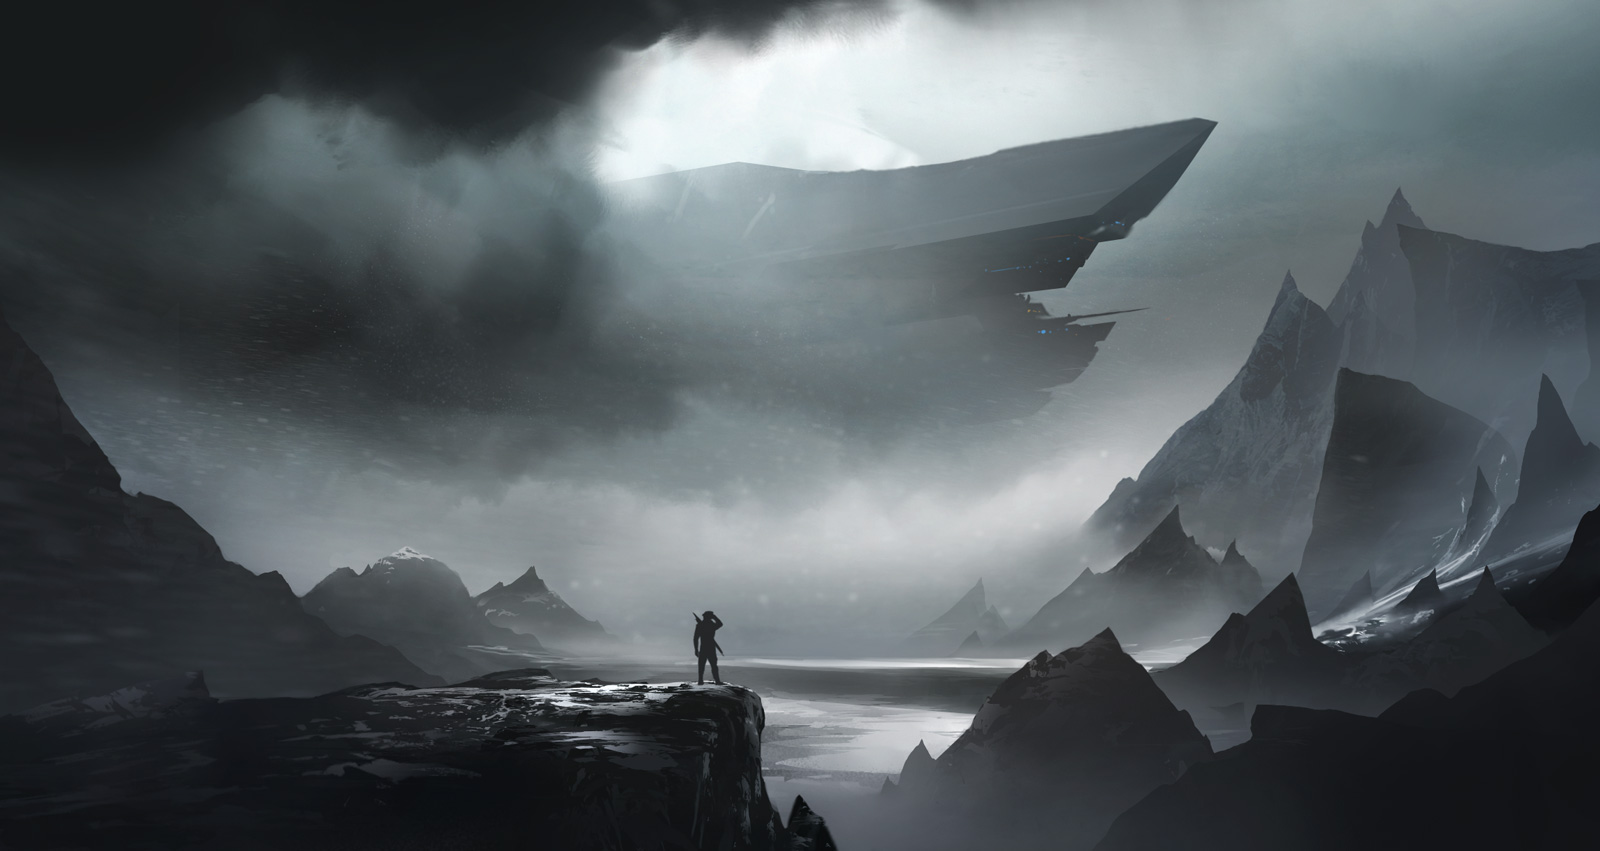 The prow of the carrier broke through the clouds, and he paused on the cliff, wondering if he could make it across the expanse of ice before he was spotted. Space opera in the arctiiiiic!